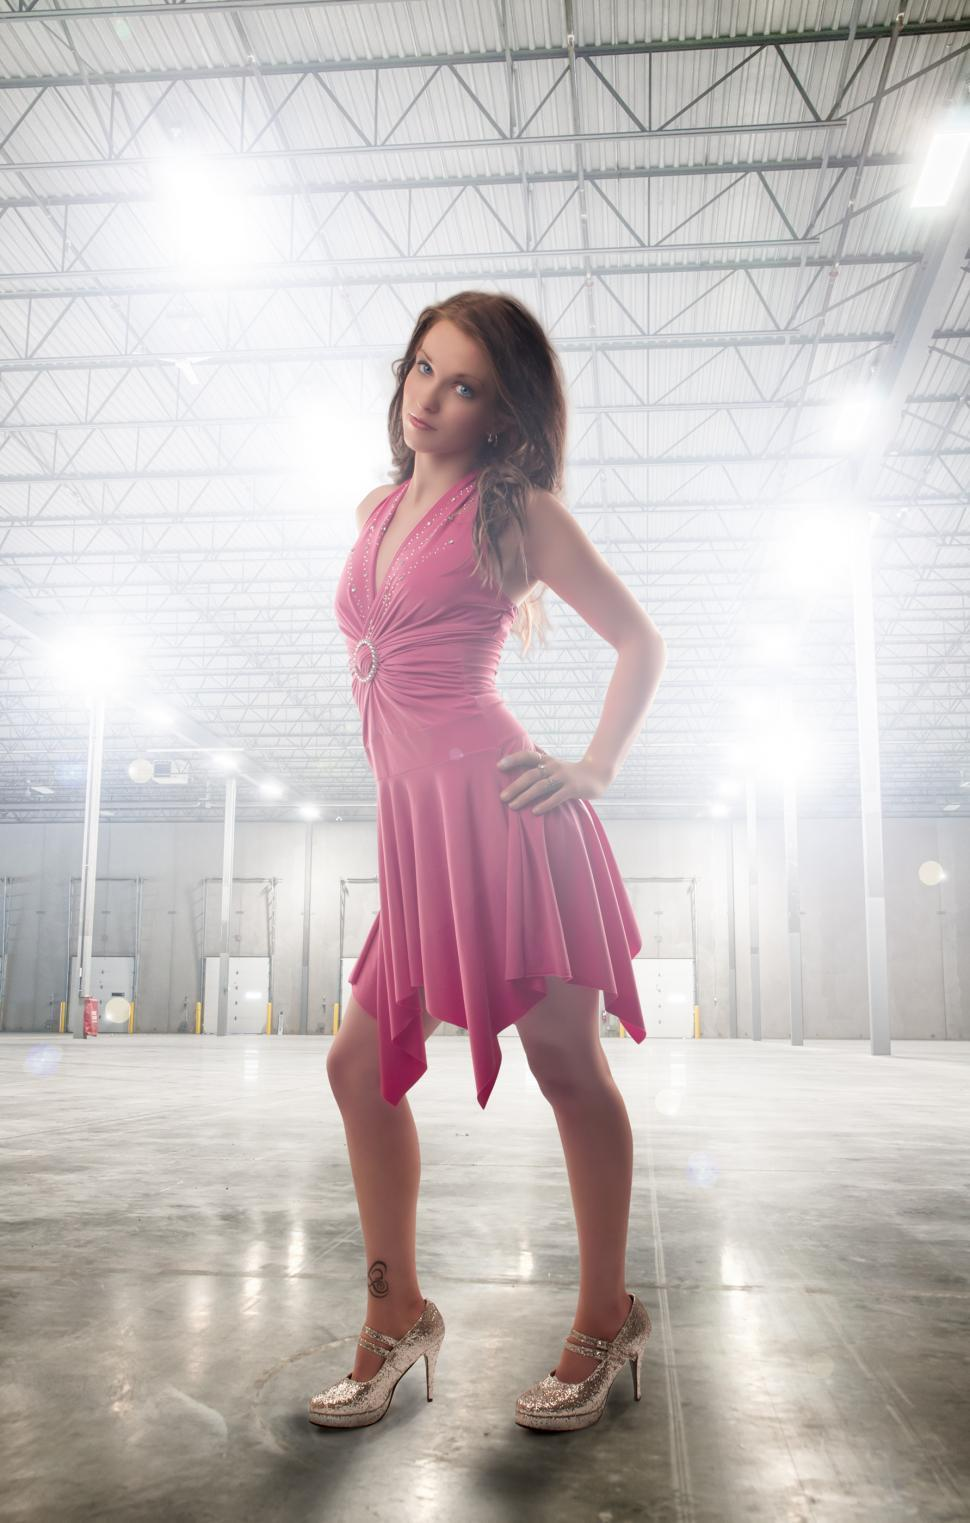 Download Free Stock HD Photo of Model in empty warehouse Online